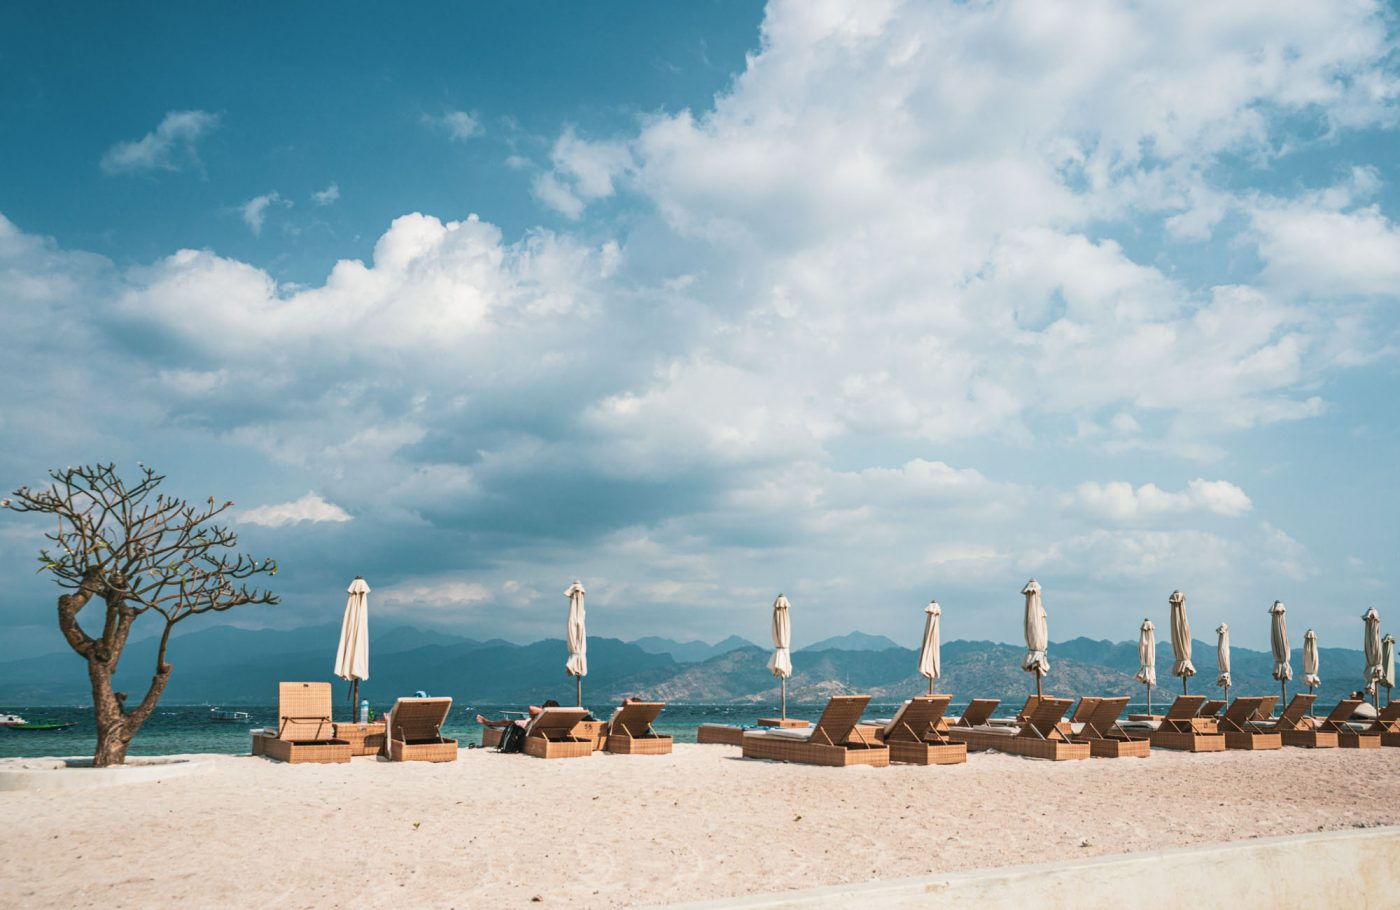 Beach vibes at Gili Trawangan